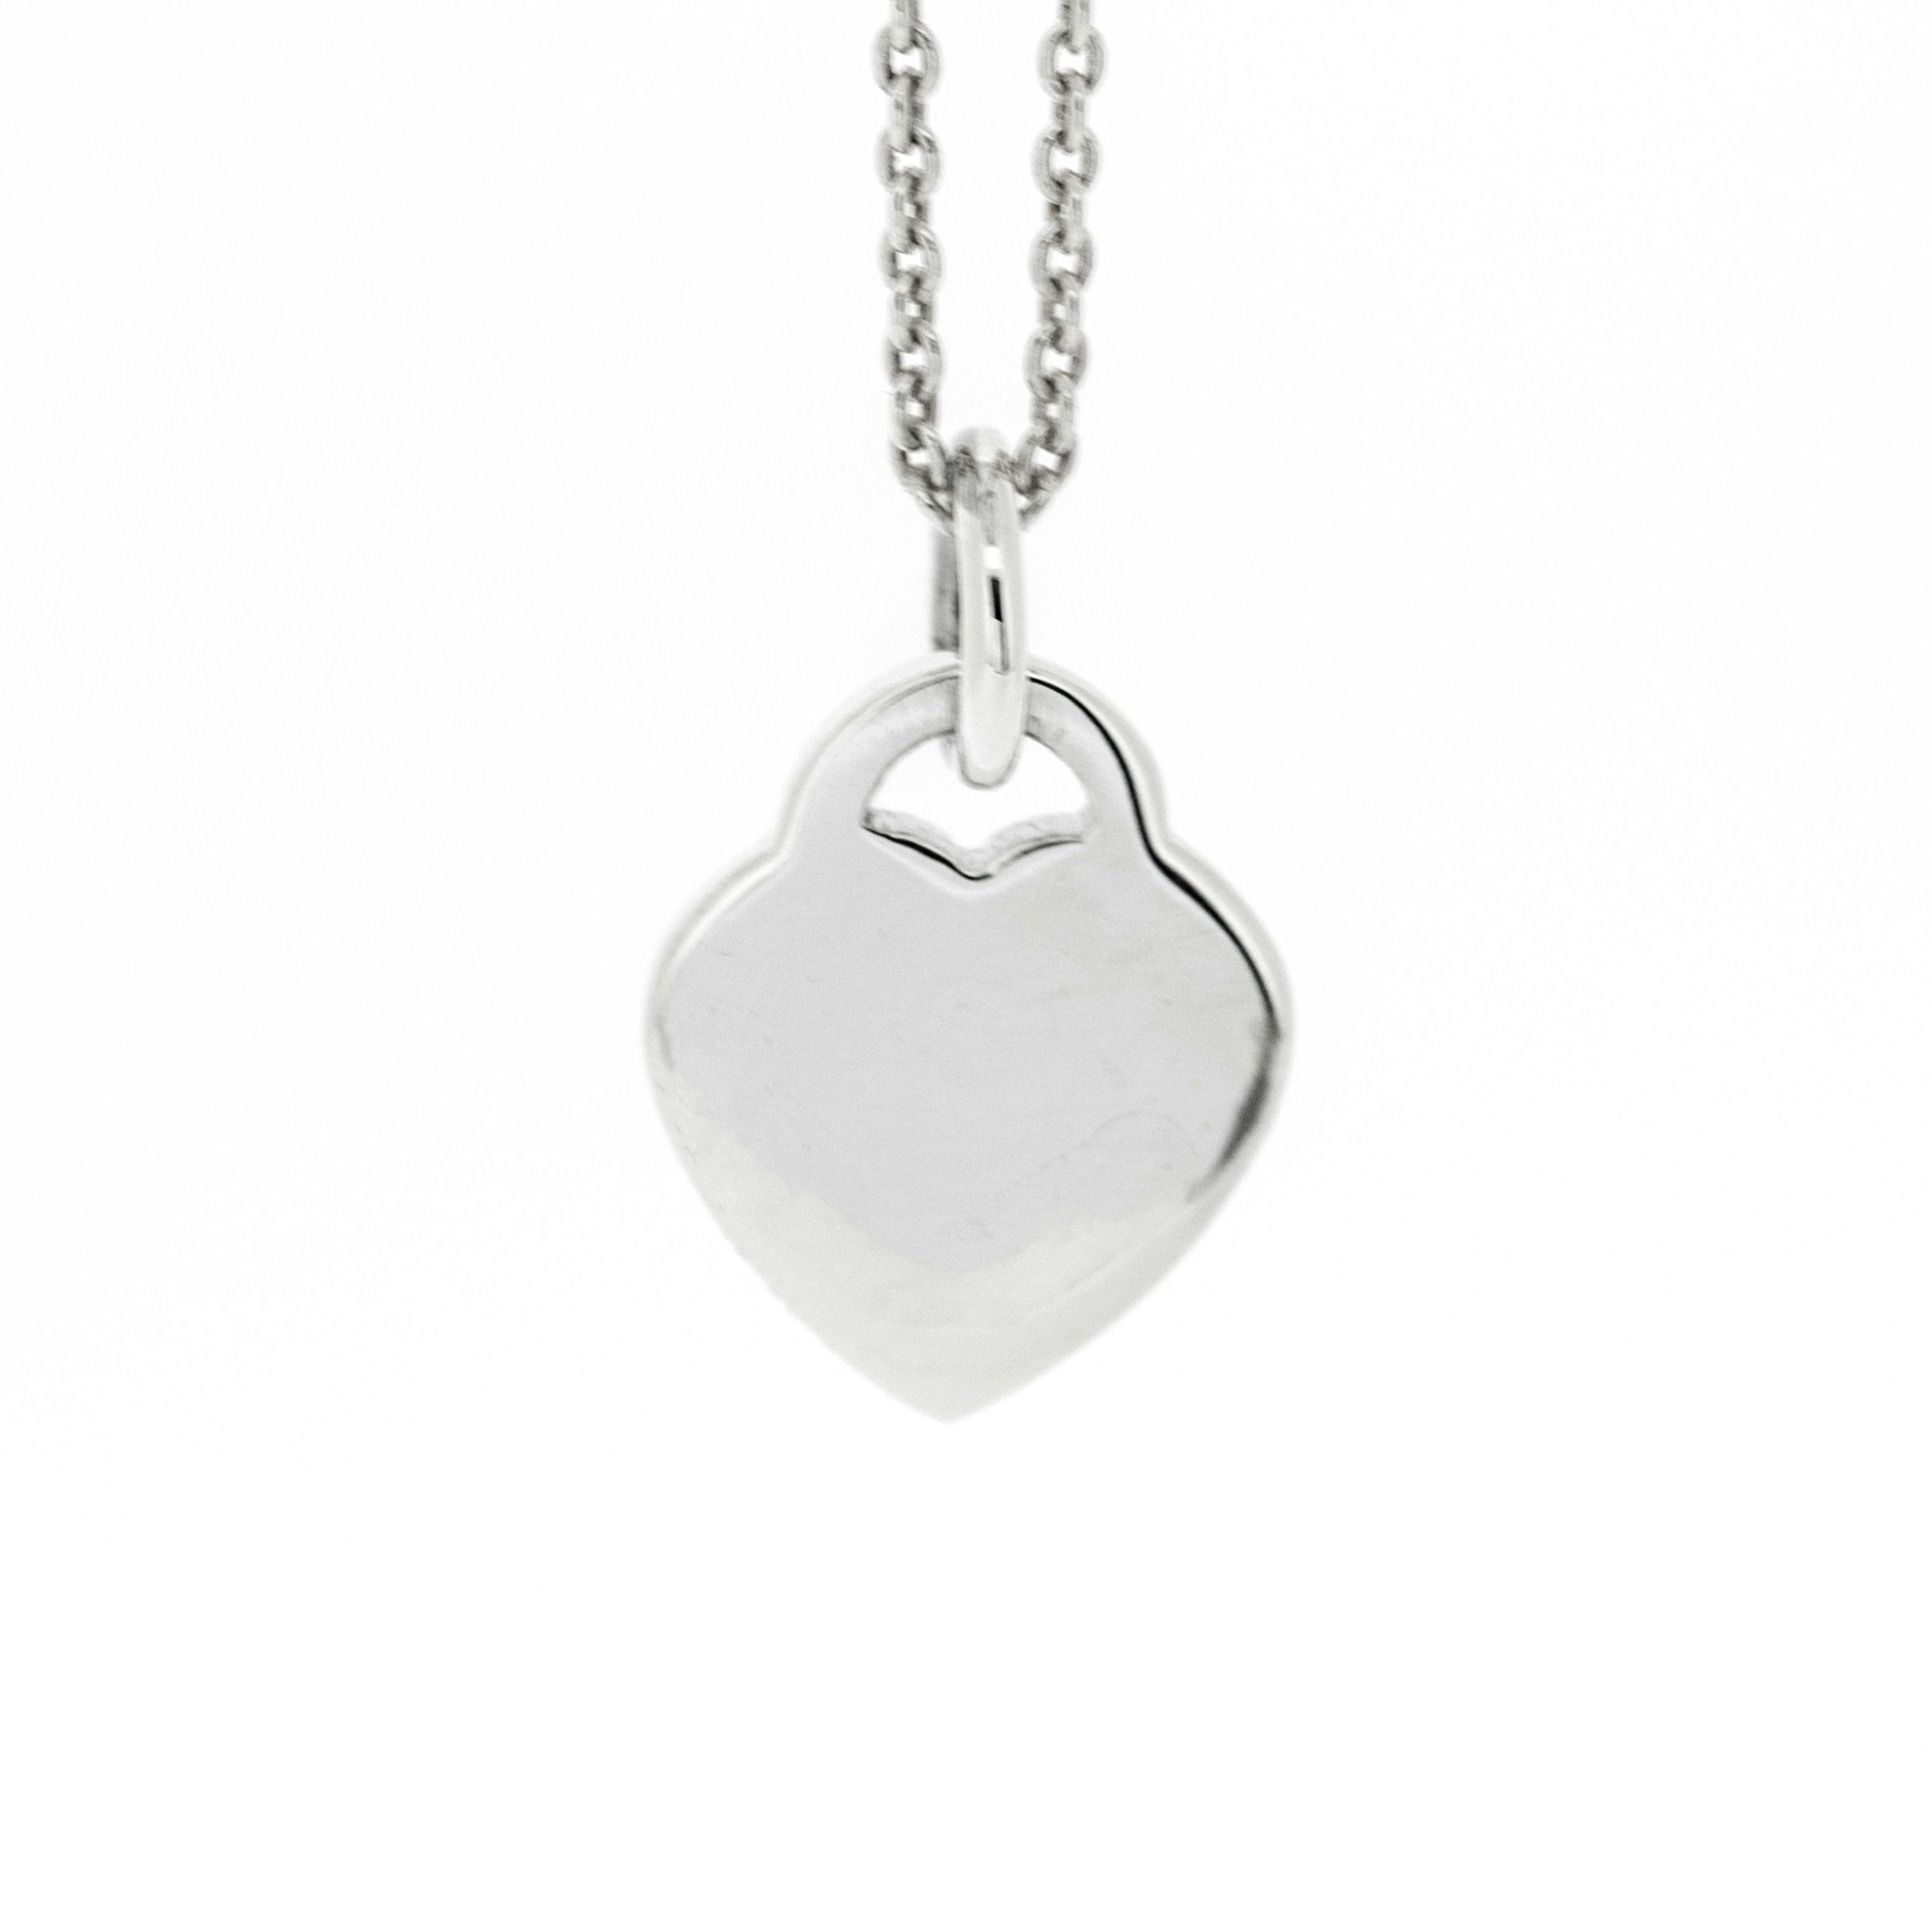 10mm Heart Tag Pendant